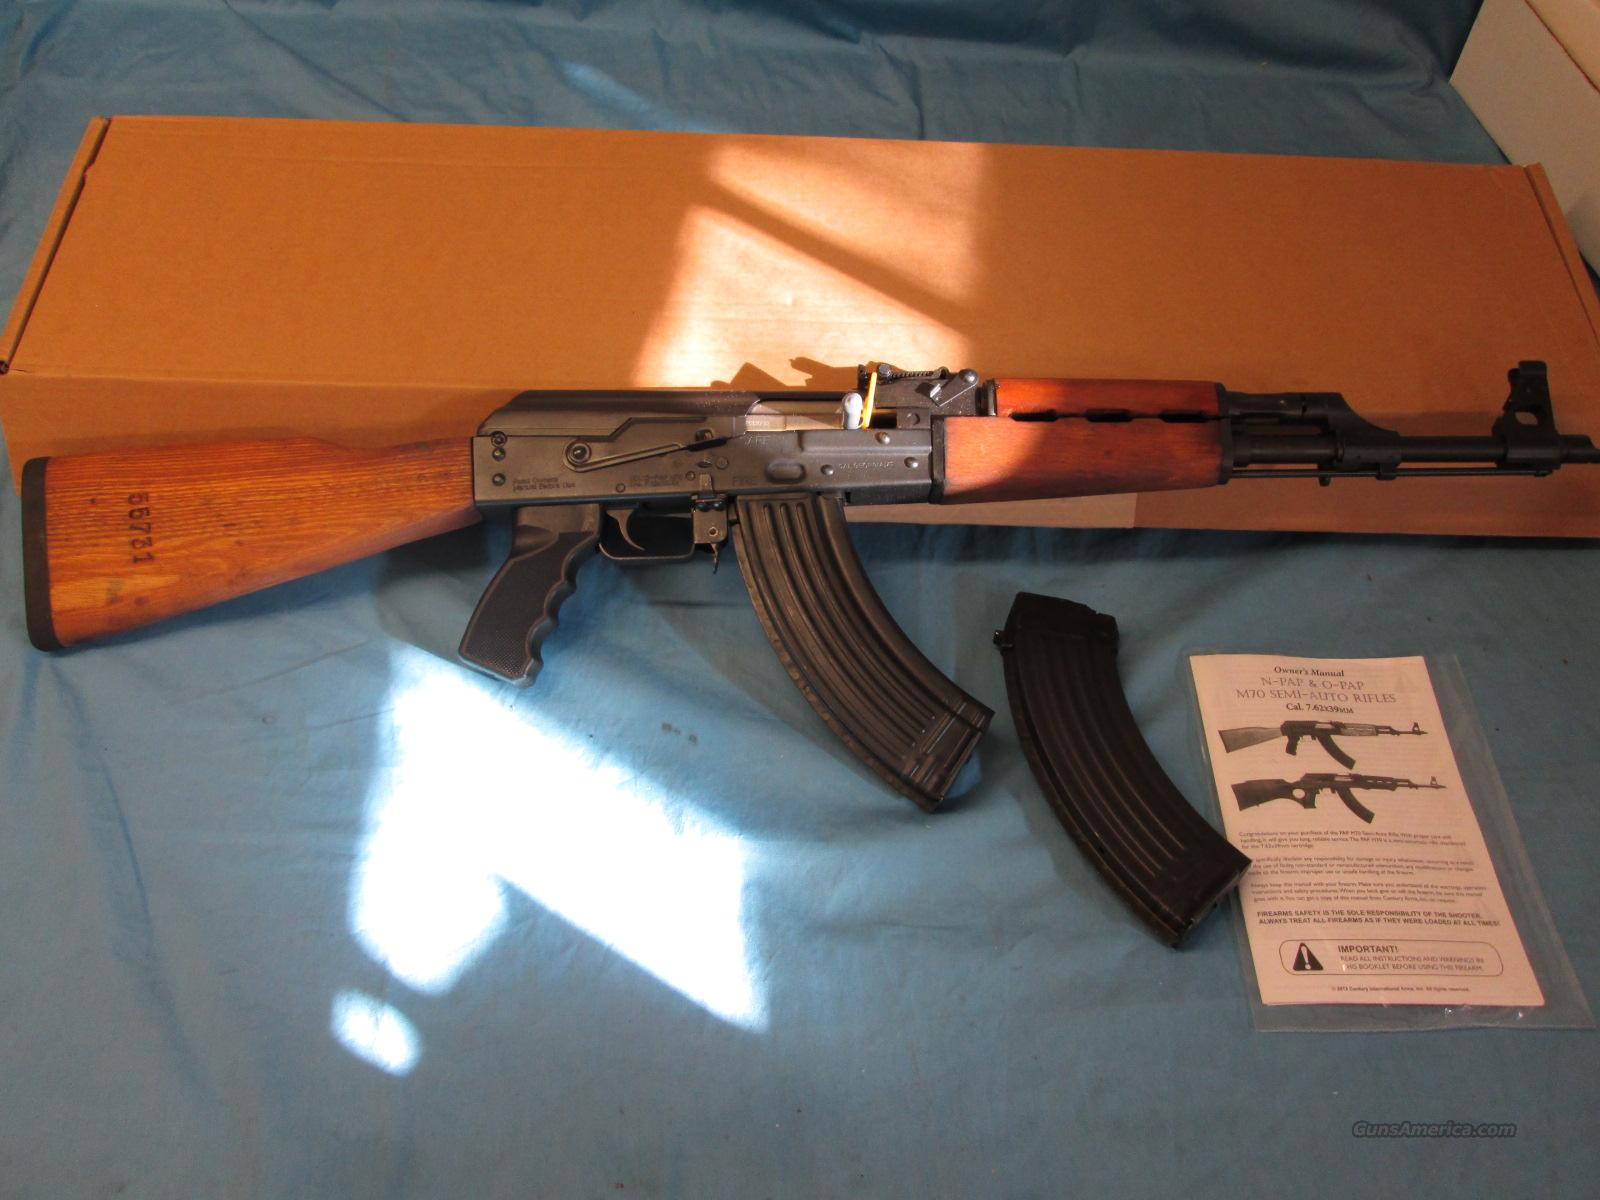 Price Drop! Last One At This Price!  AK-47 Zastava O-PAP  Guns > Rifles > AK-47 Rifles (and copies) > Full Stock